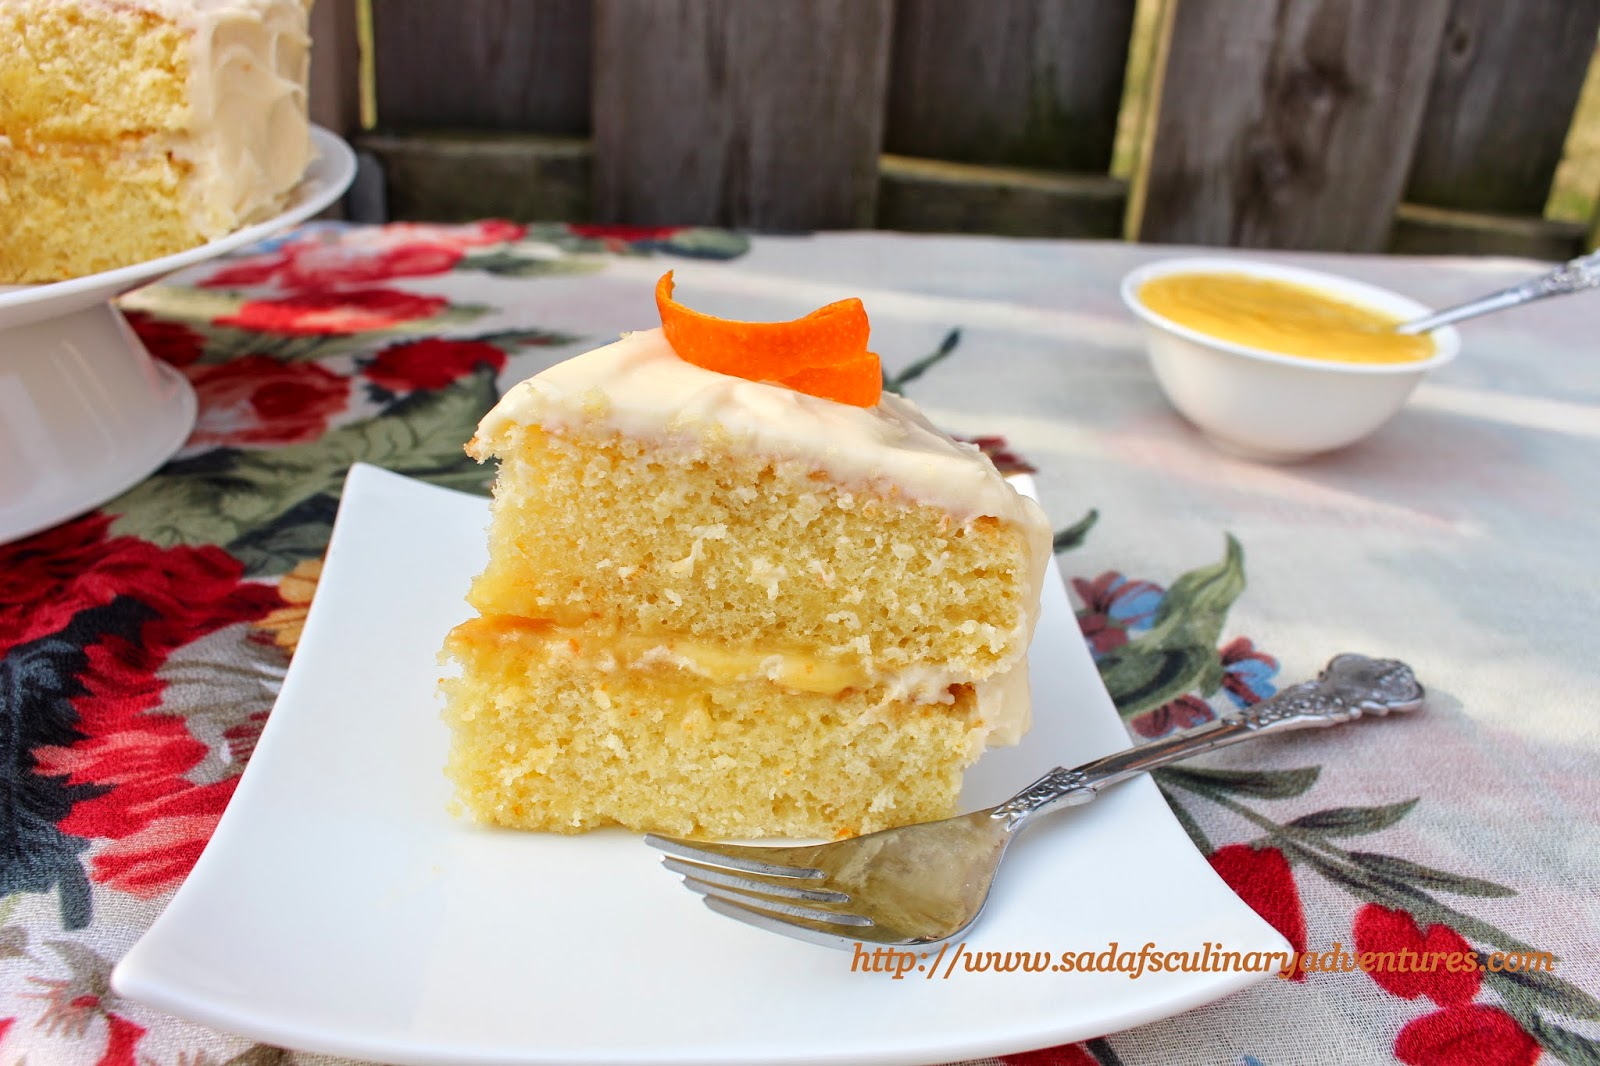 Orange Chiffon Cake with Orange Curd Filling and Orange Cream Cheese Frosting